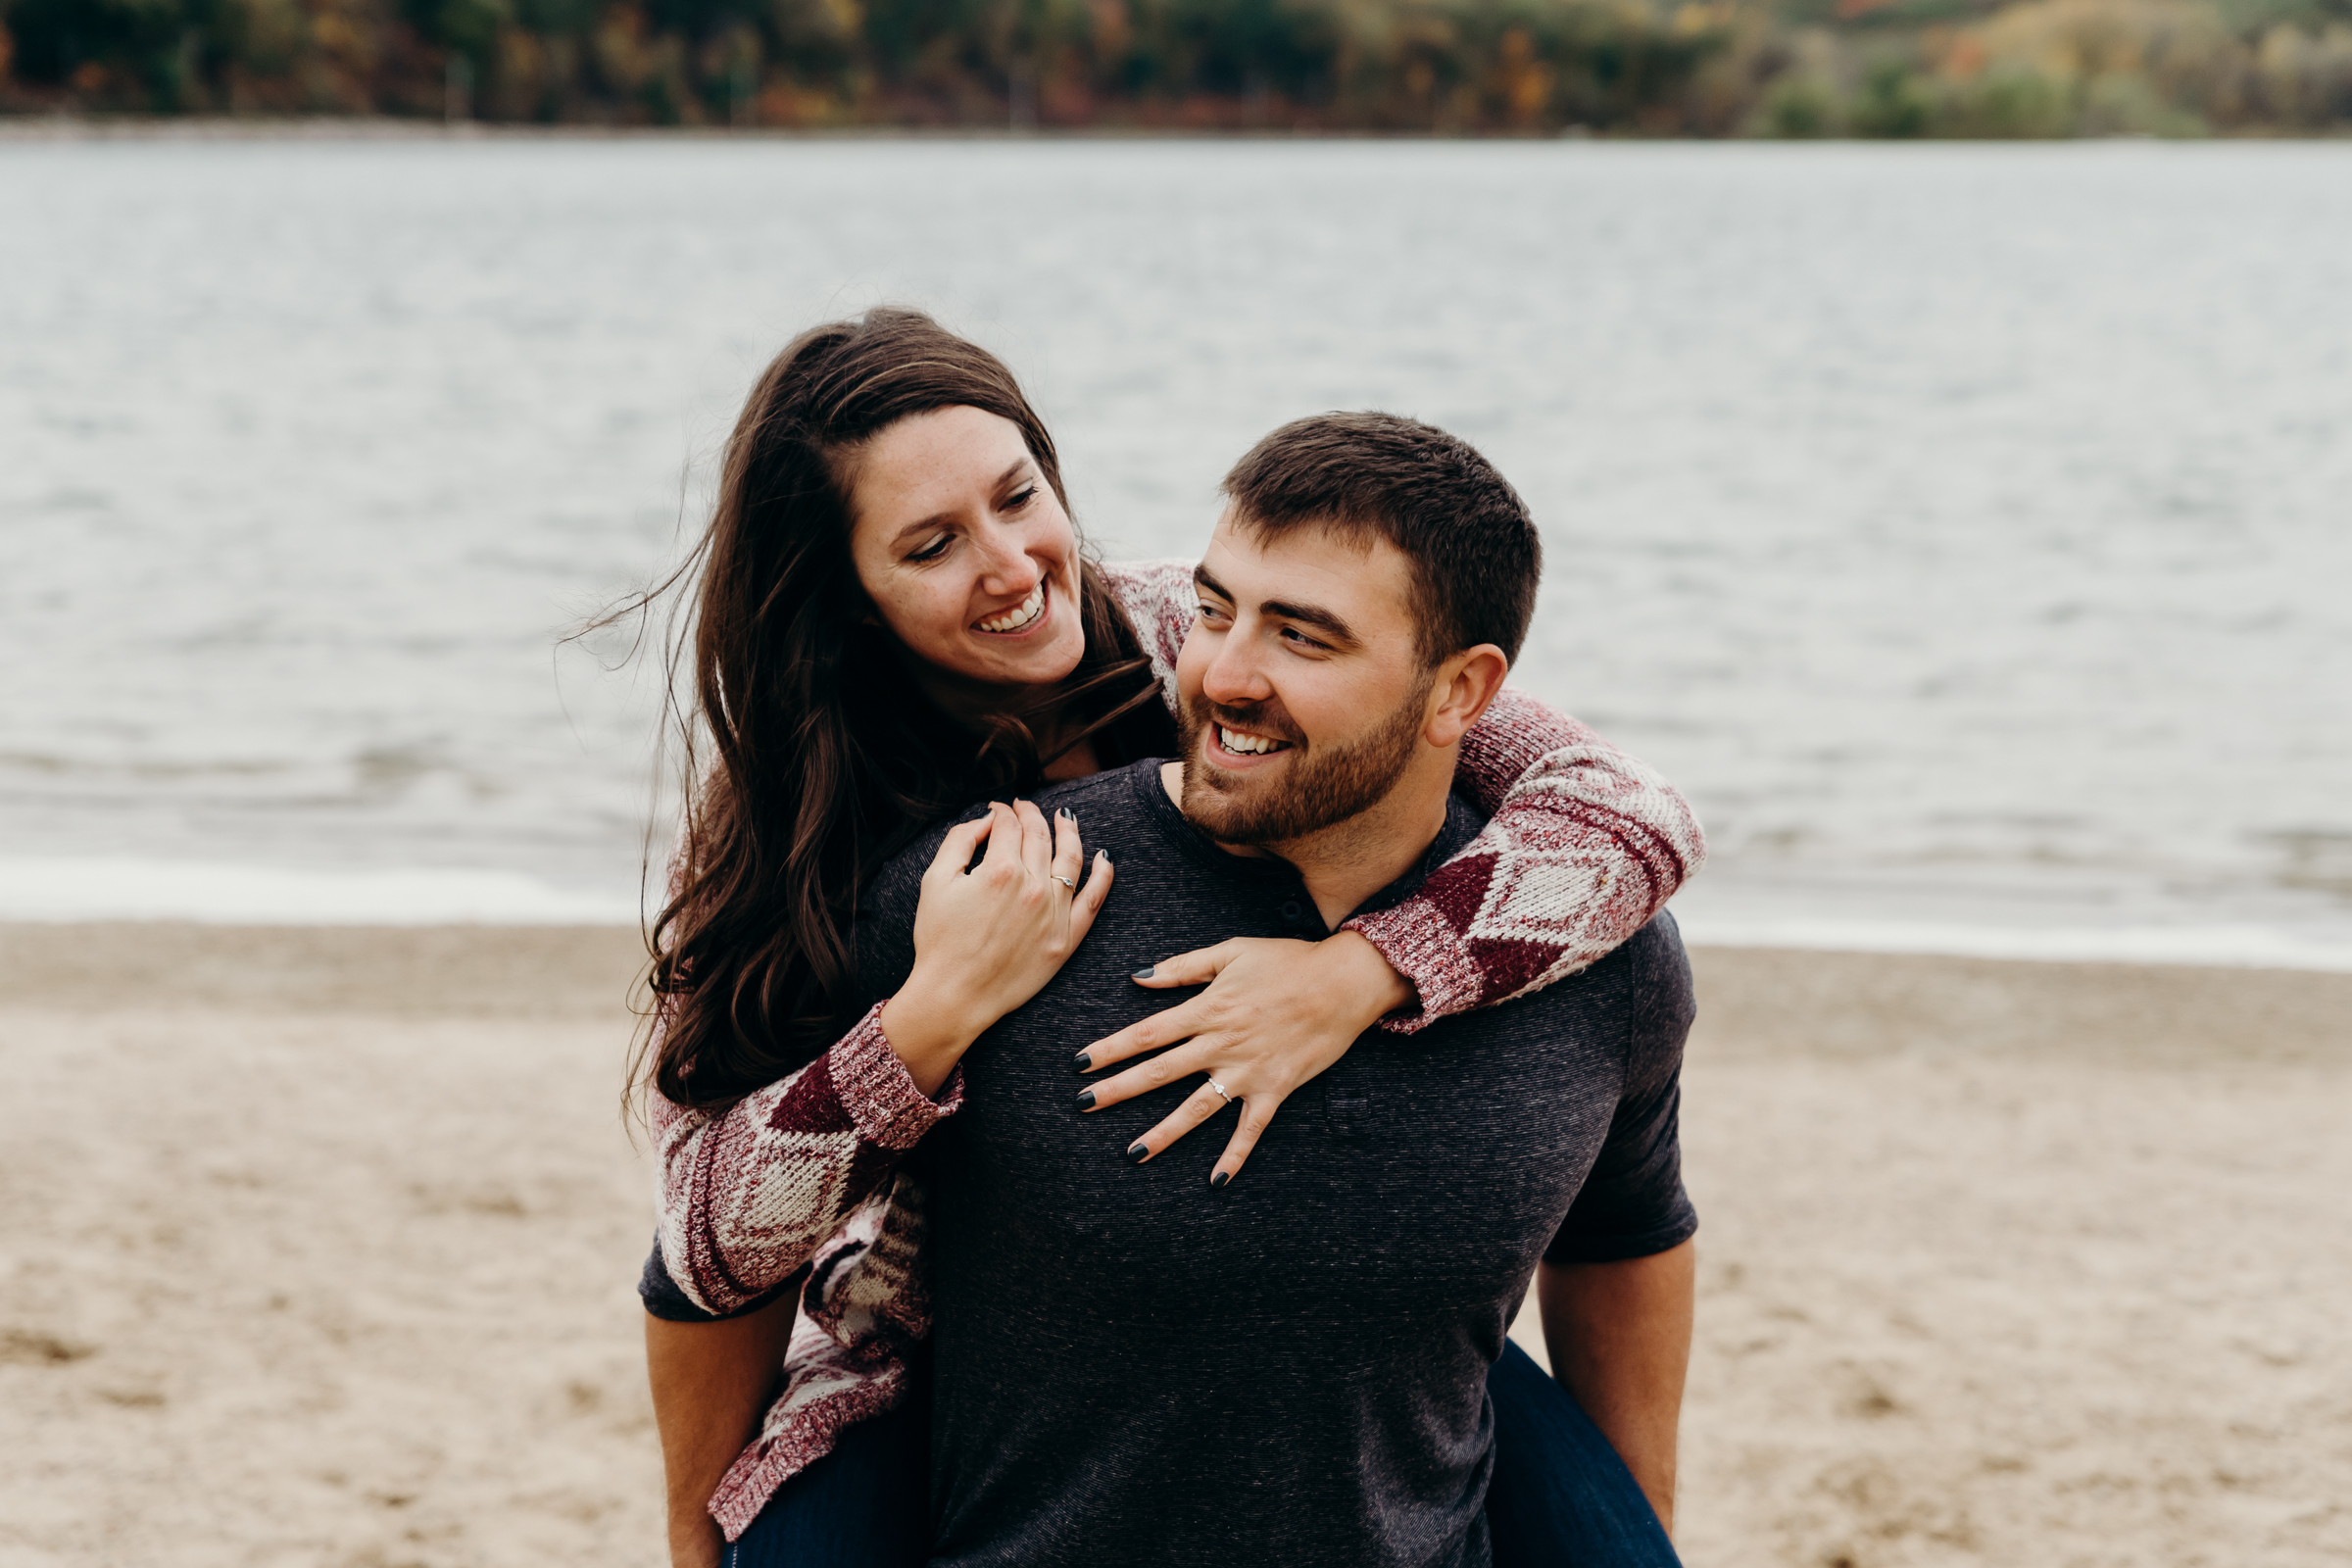 Engaged couple smile at each other while the man gives his fiancé a piggy back ride.